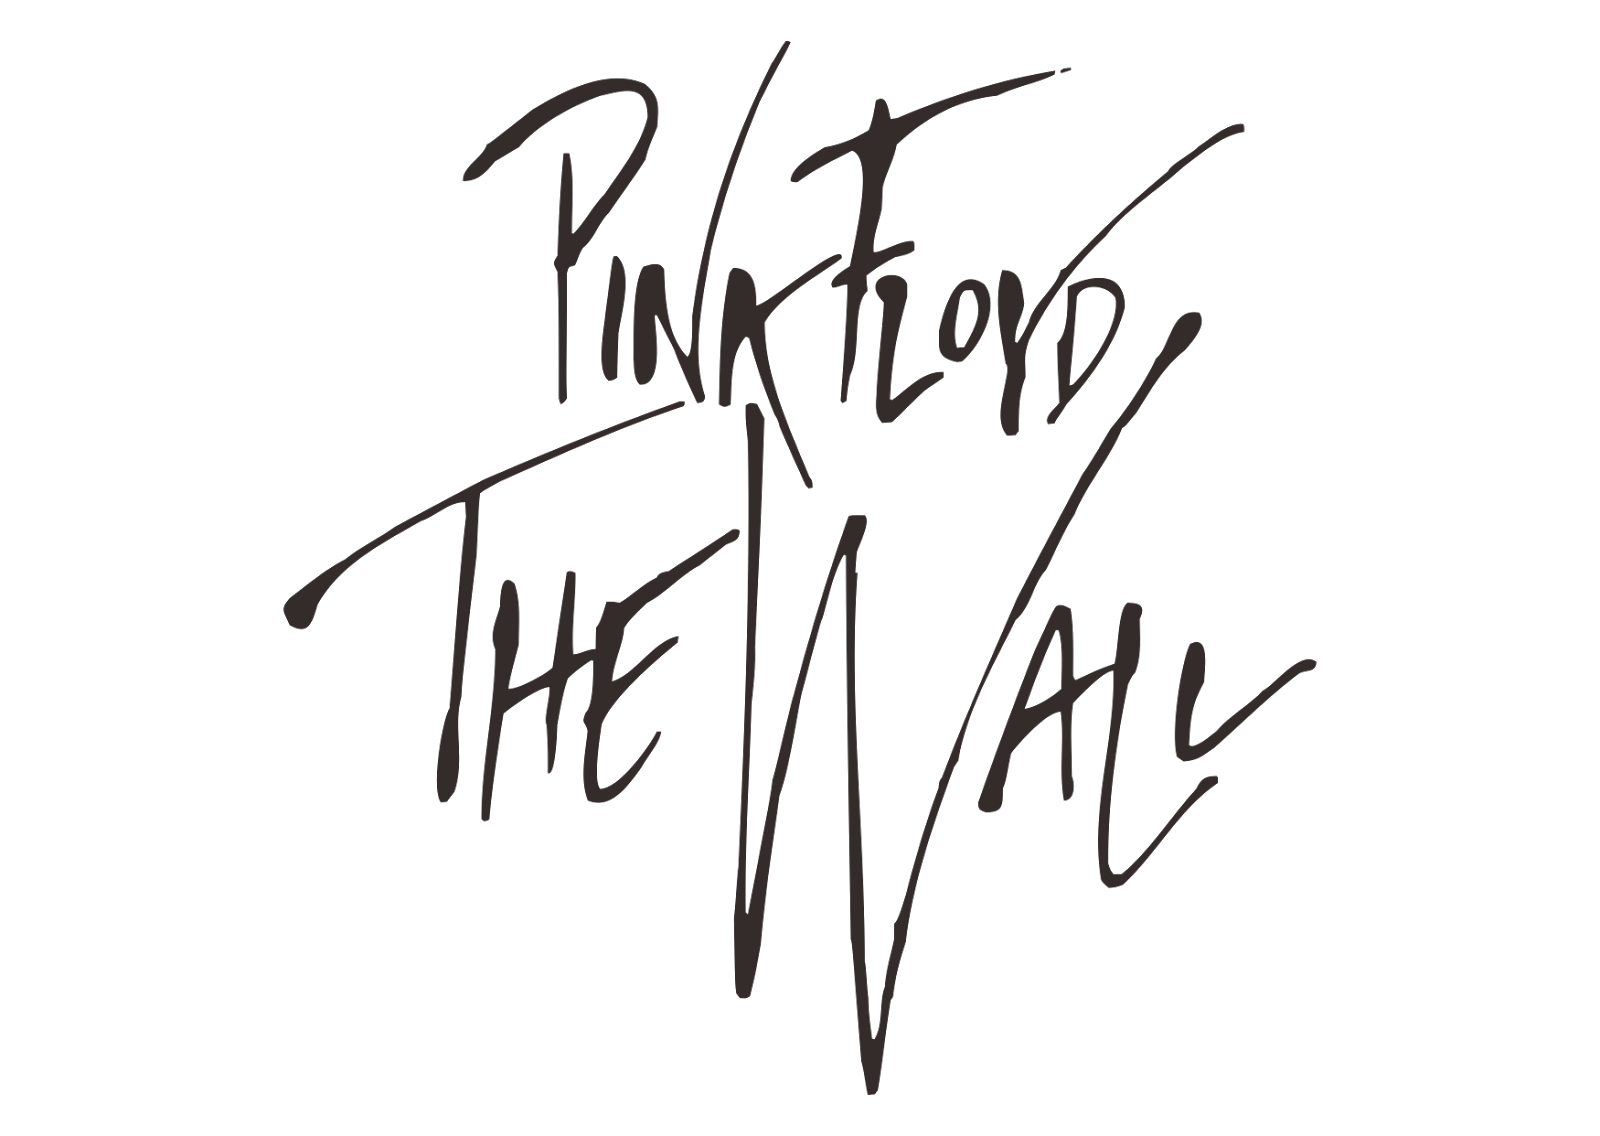 Pink Floyd the Wall Logo transparent PNG.